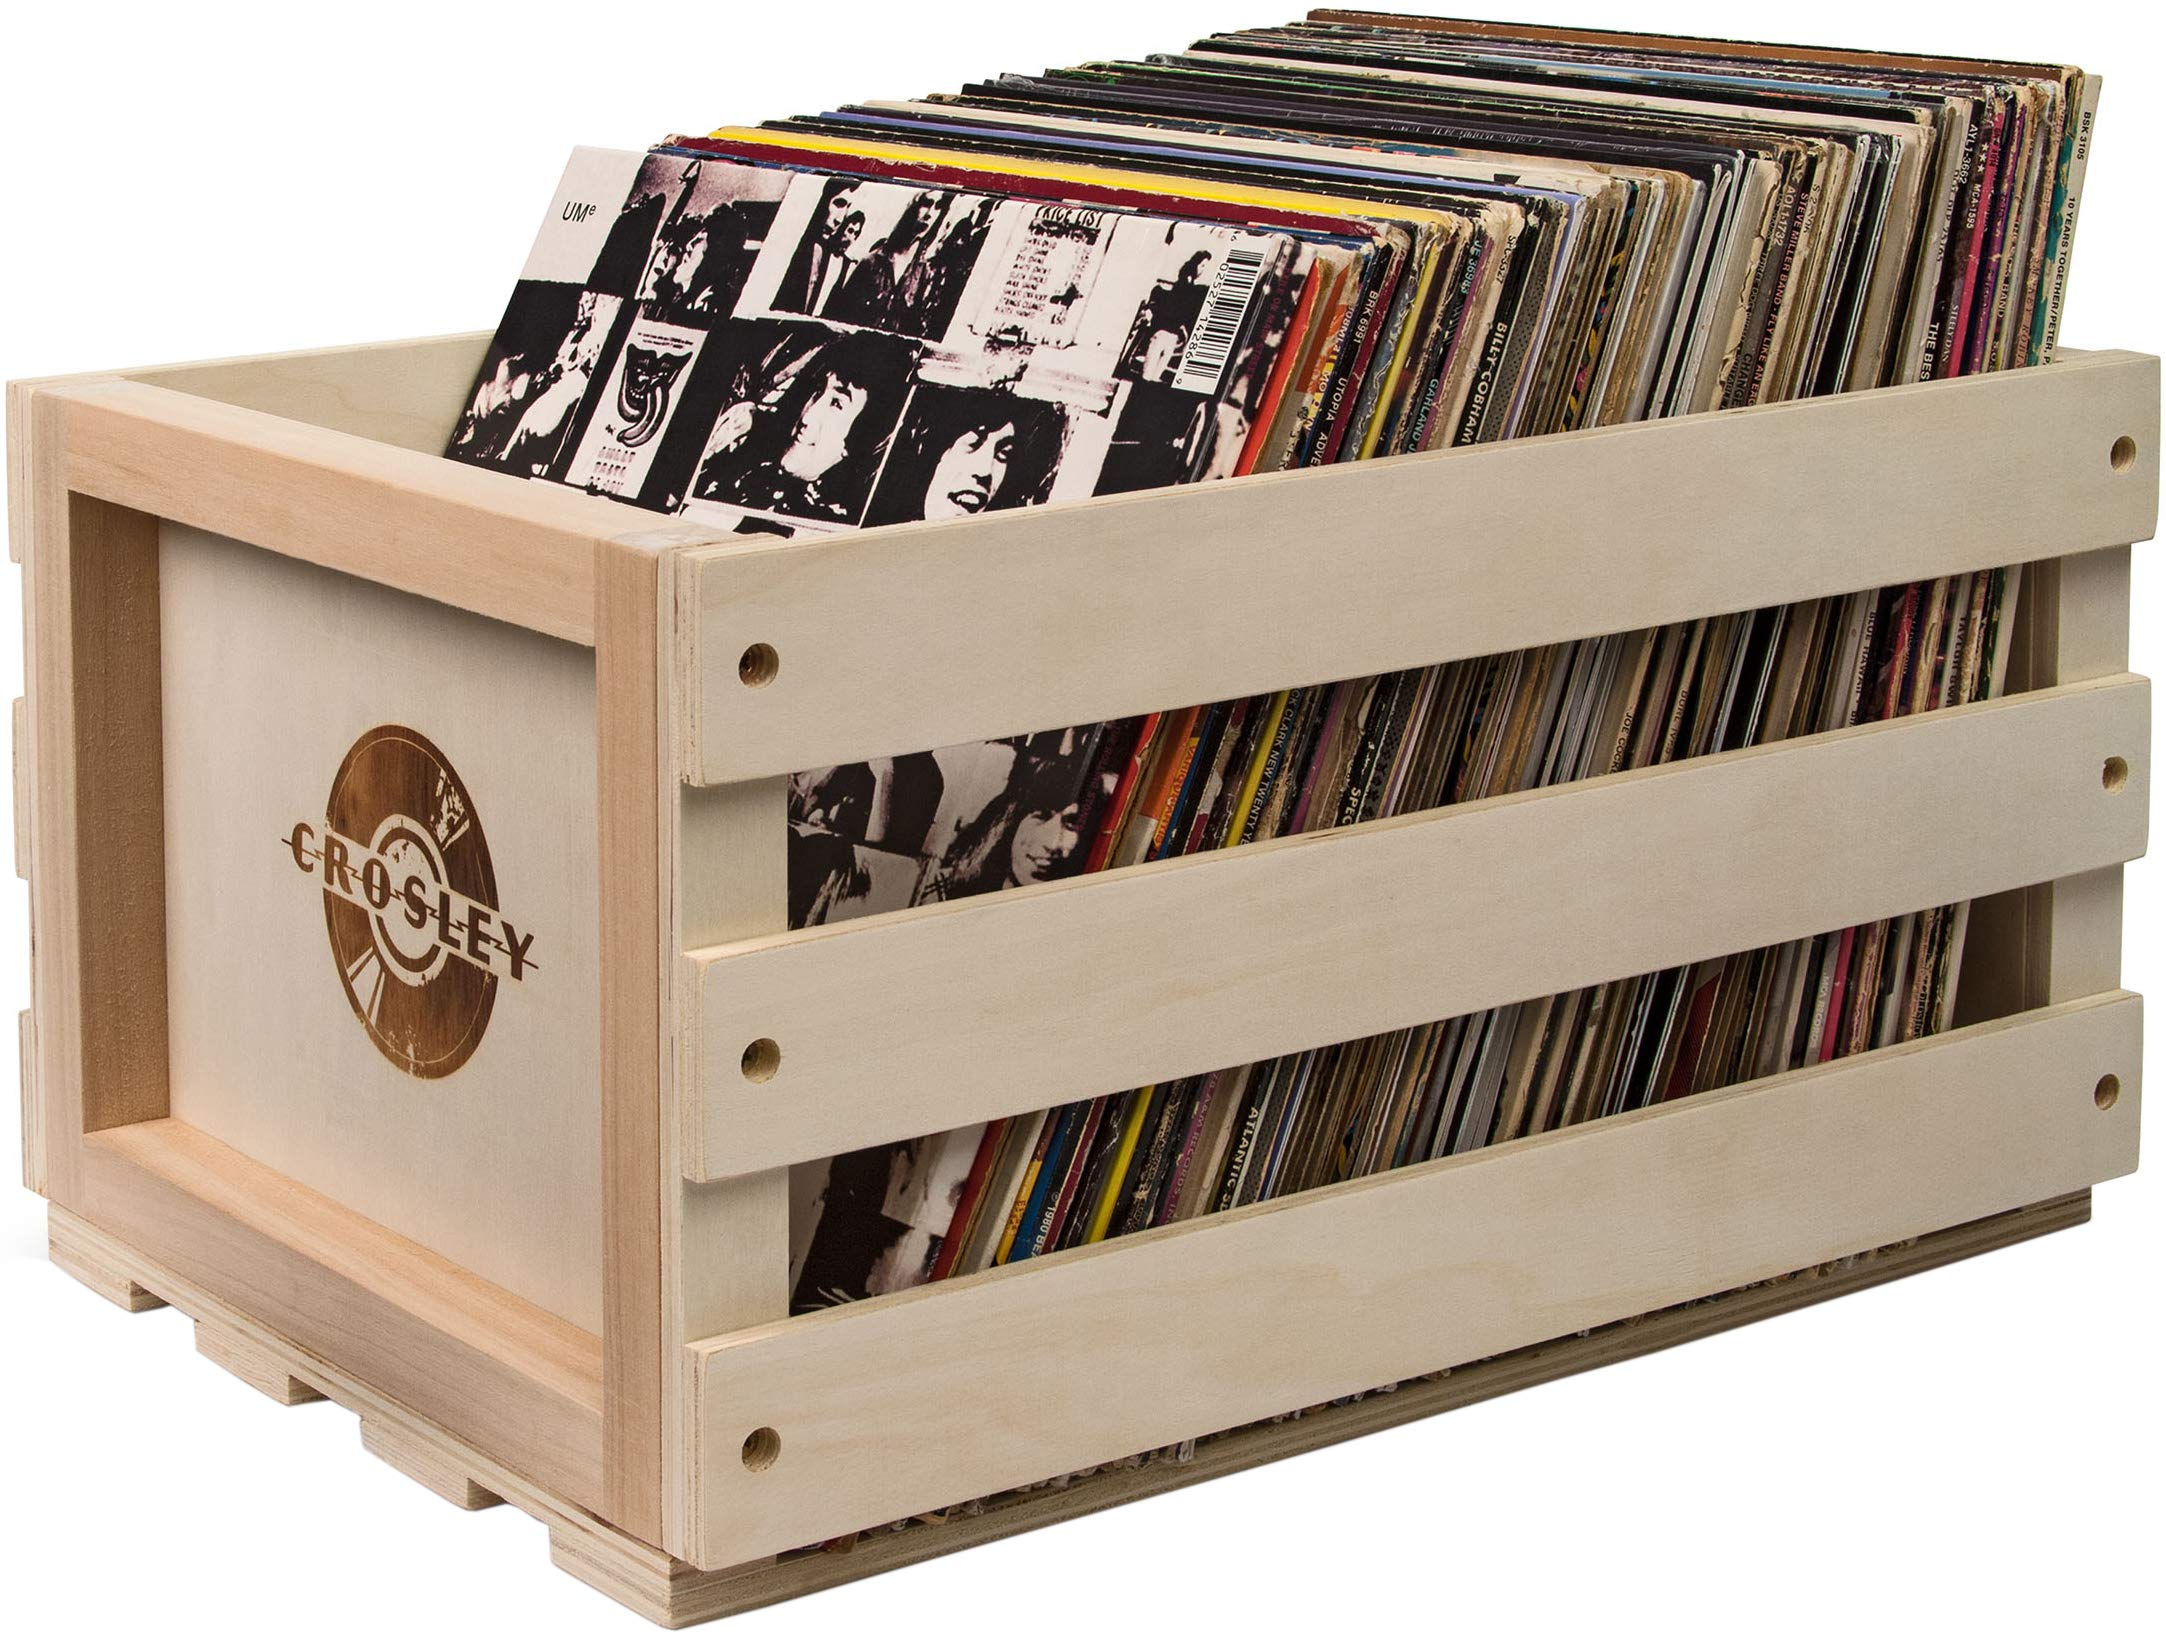 Crosley AC1004A-NA Record Storage Crate Holds up to 75 Albums, Natural by Crosley